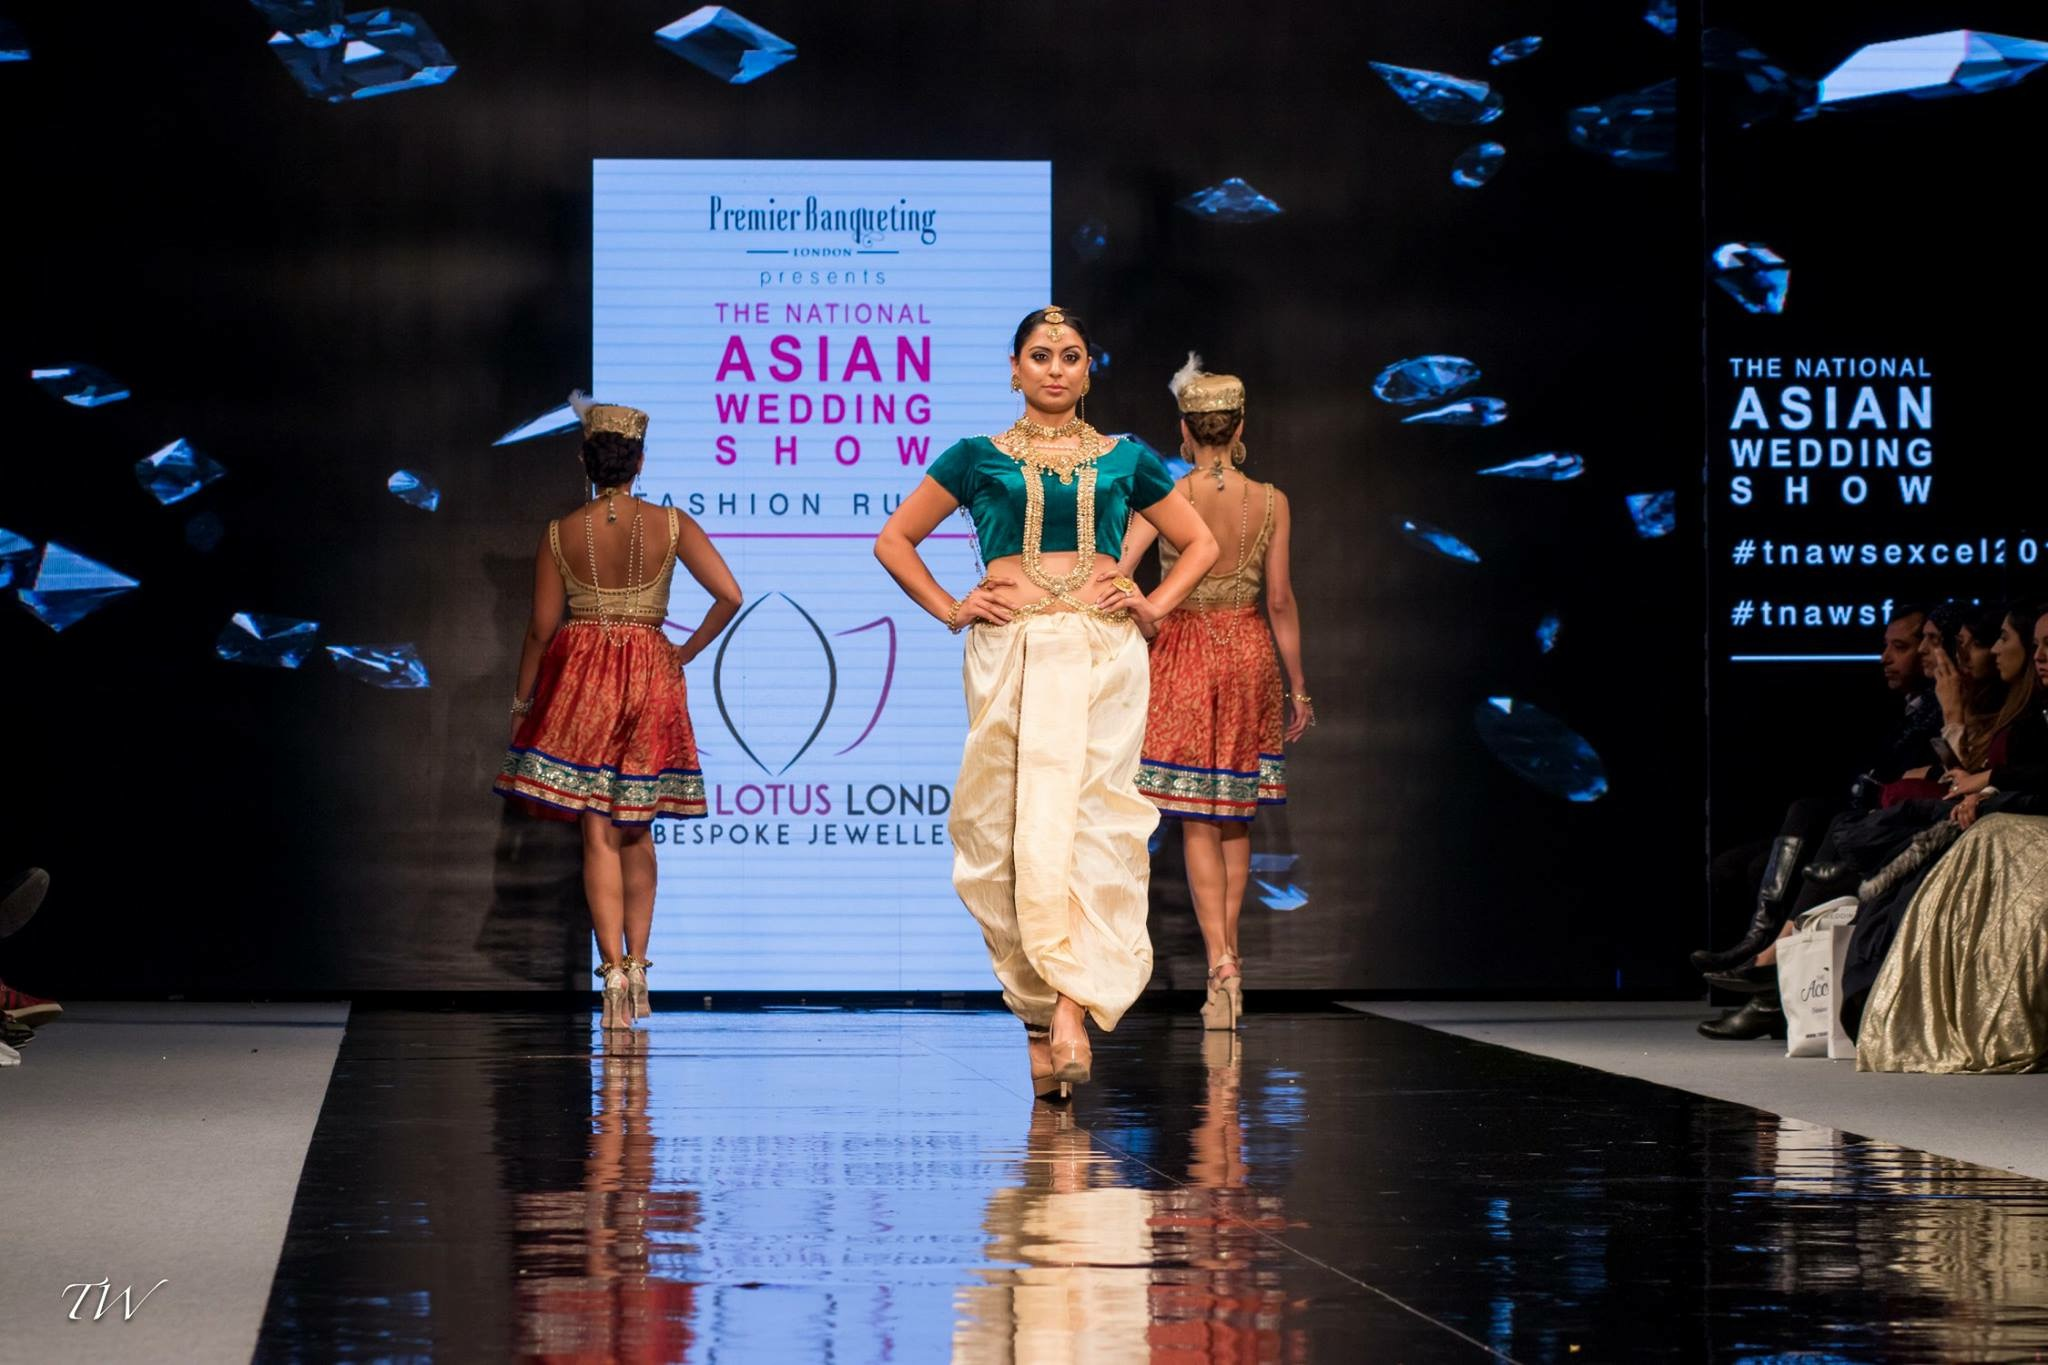 Asian Wedding Show